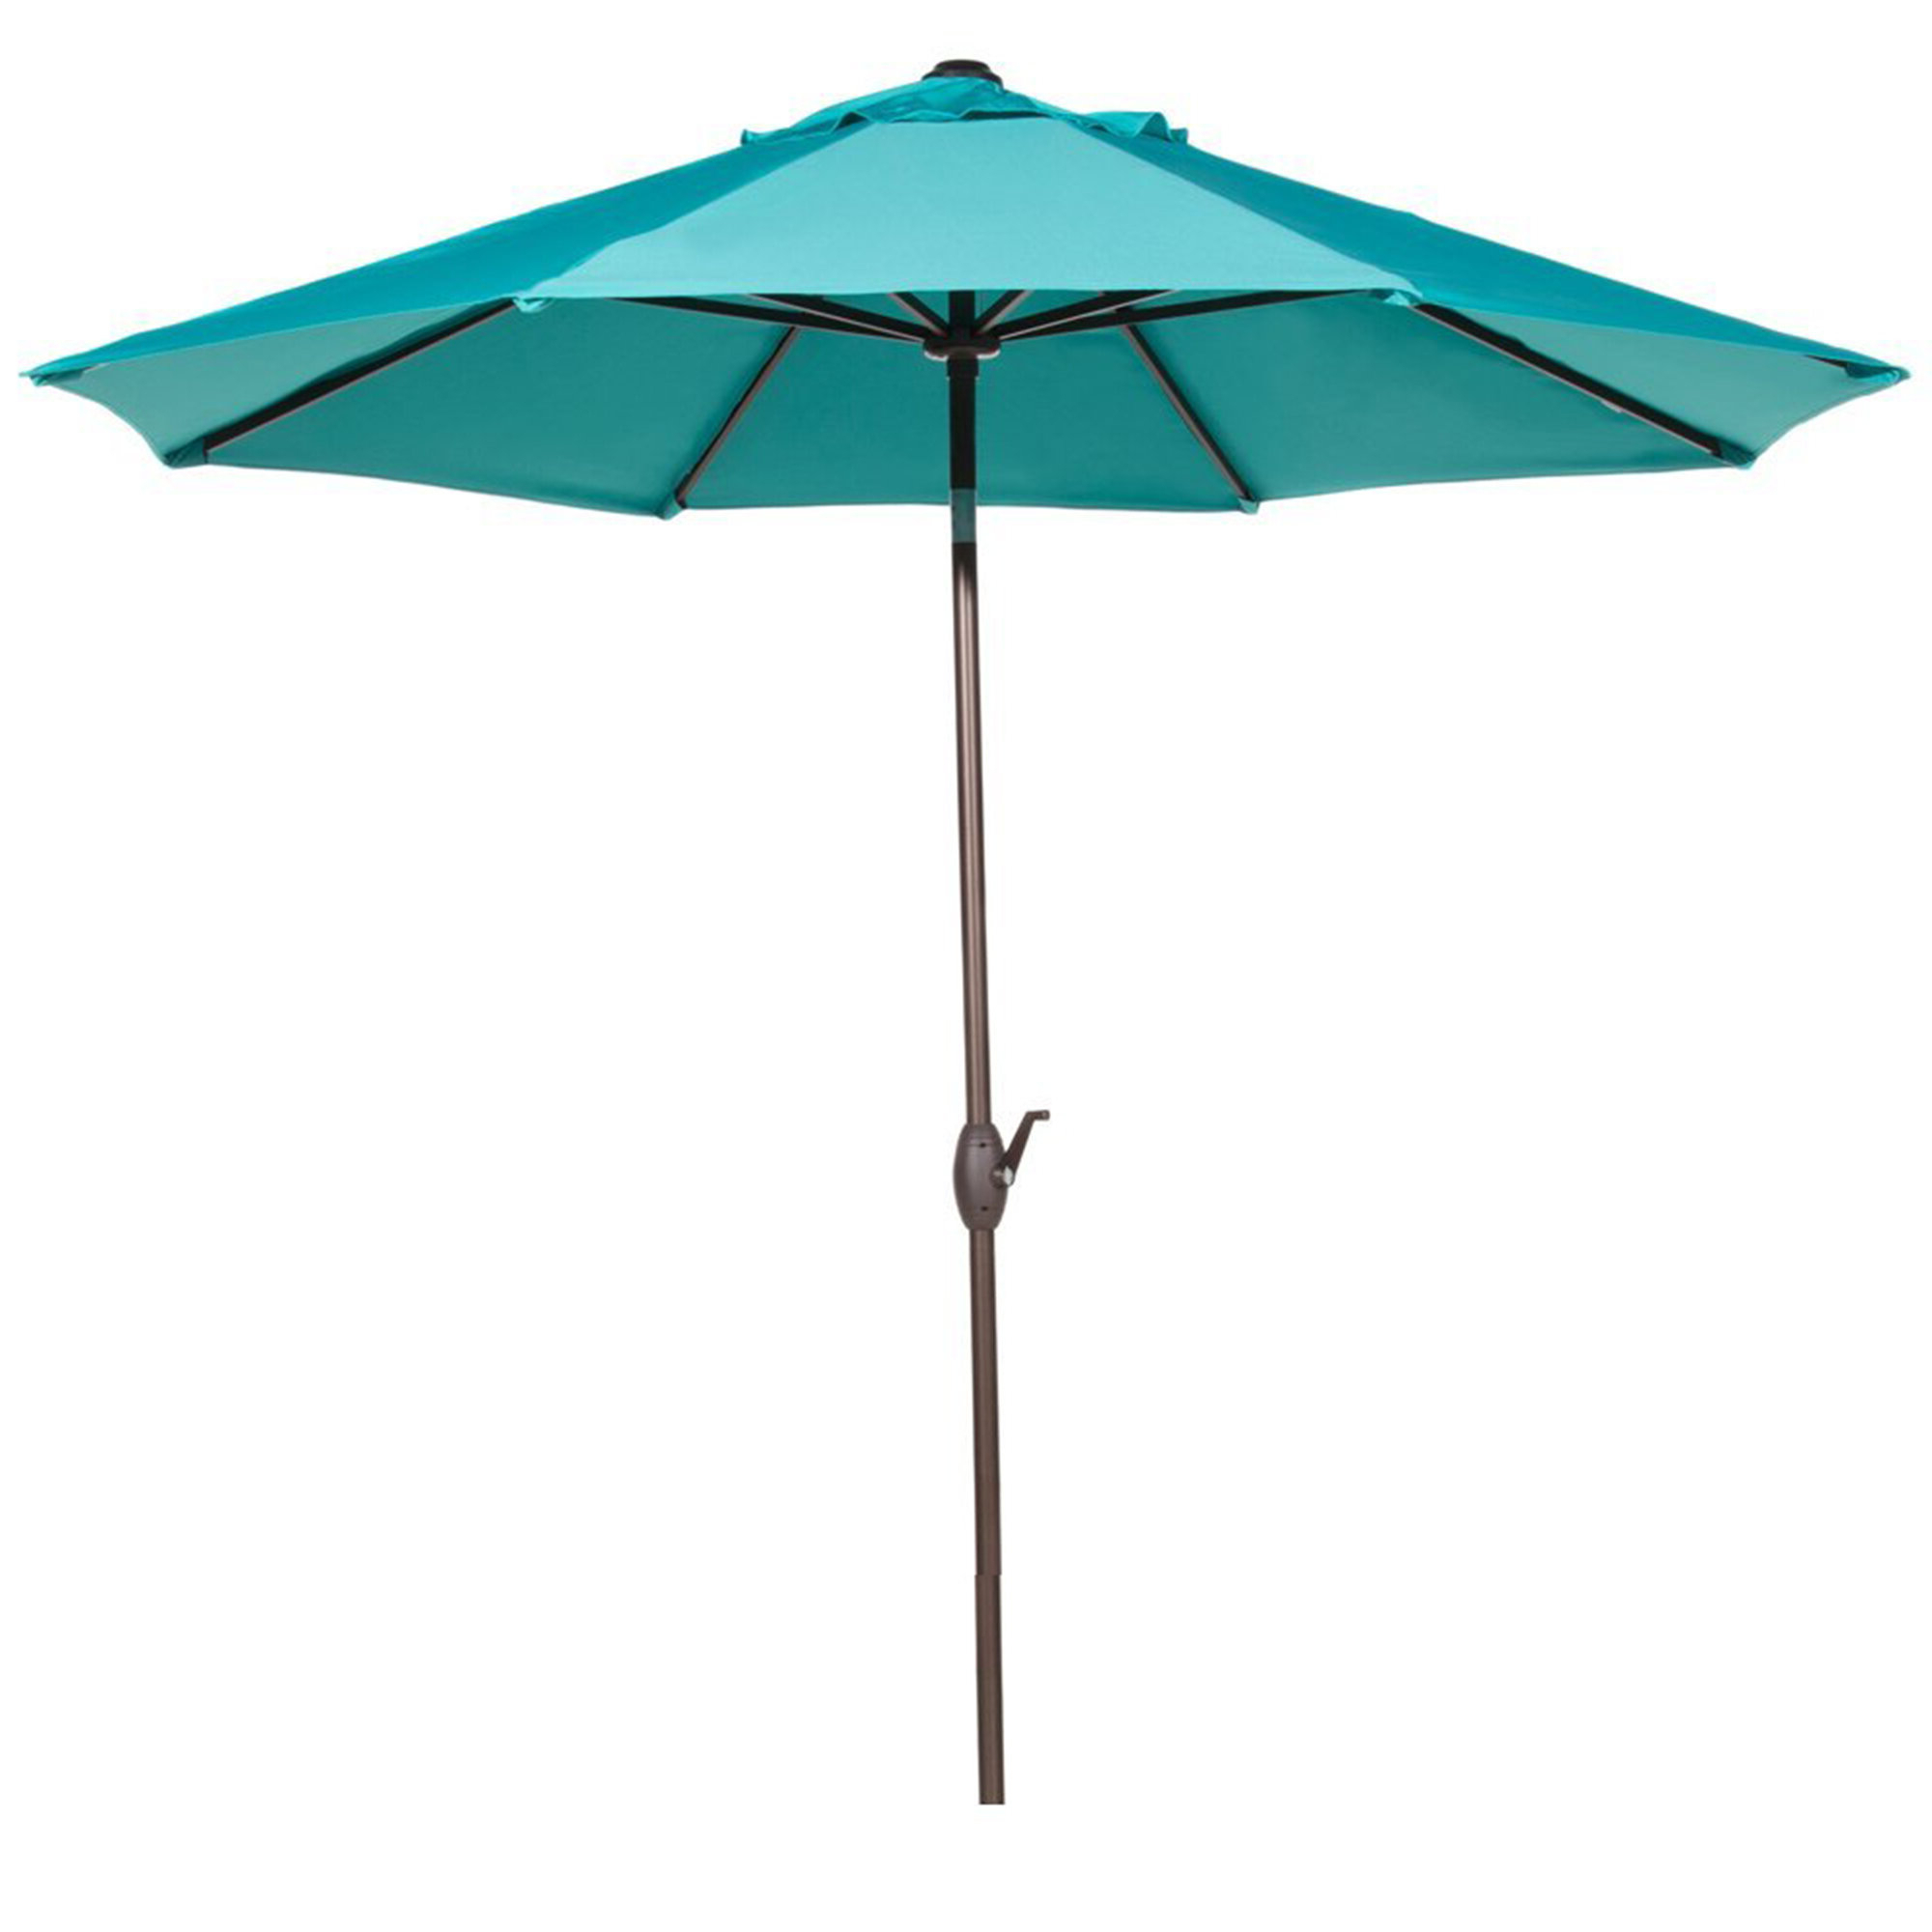 Preferred Winchester Zipcode Design 9' Market Umbrella With Launceston Market Umbrellas (View 13 of 20)